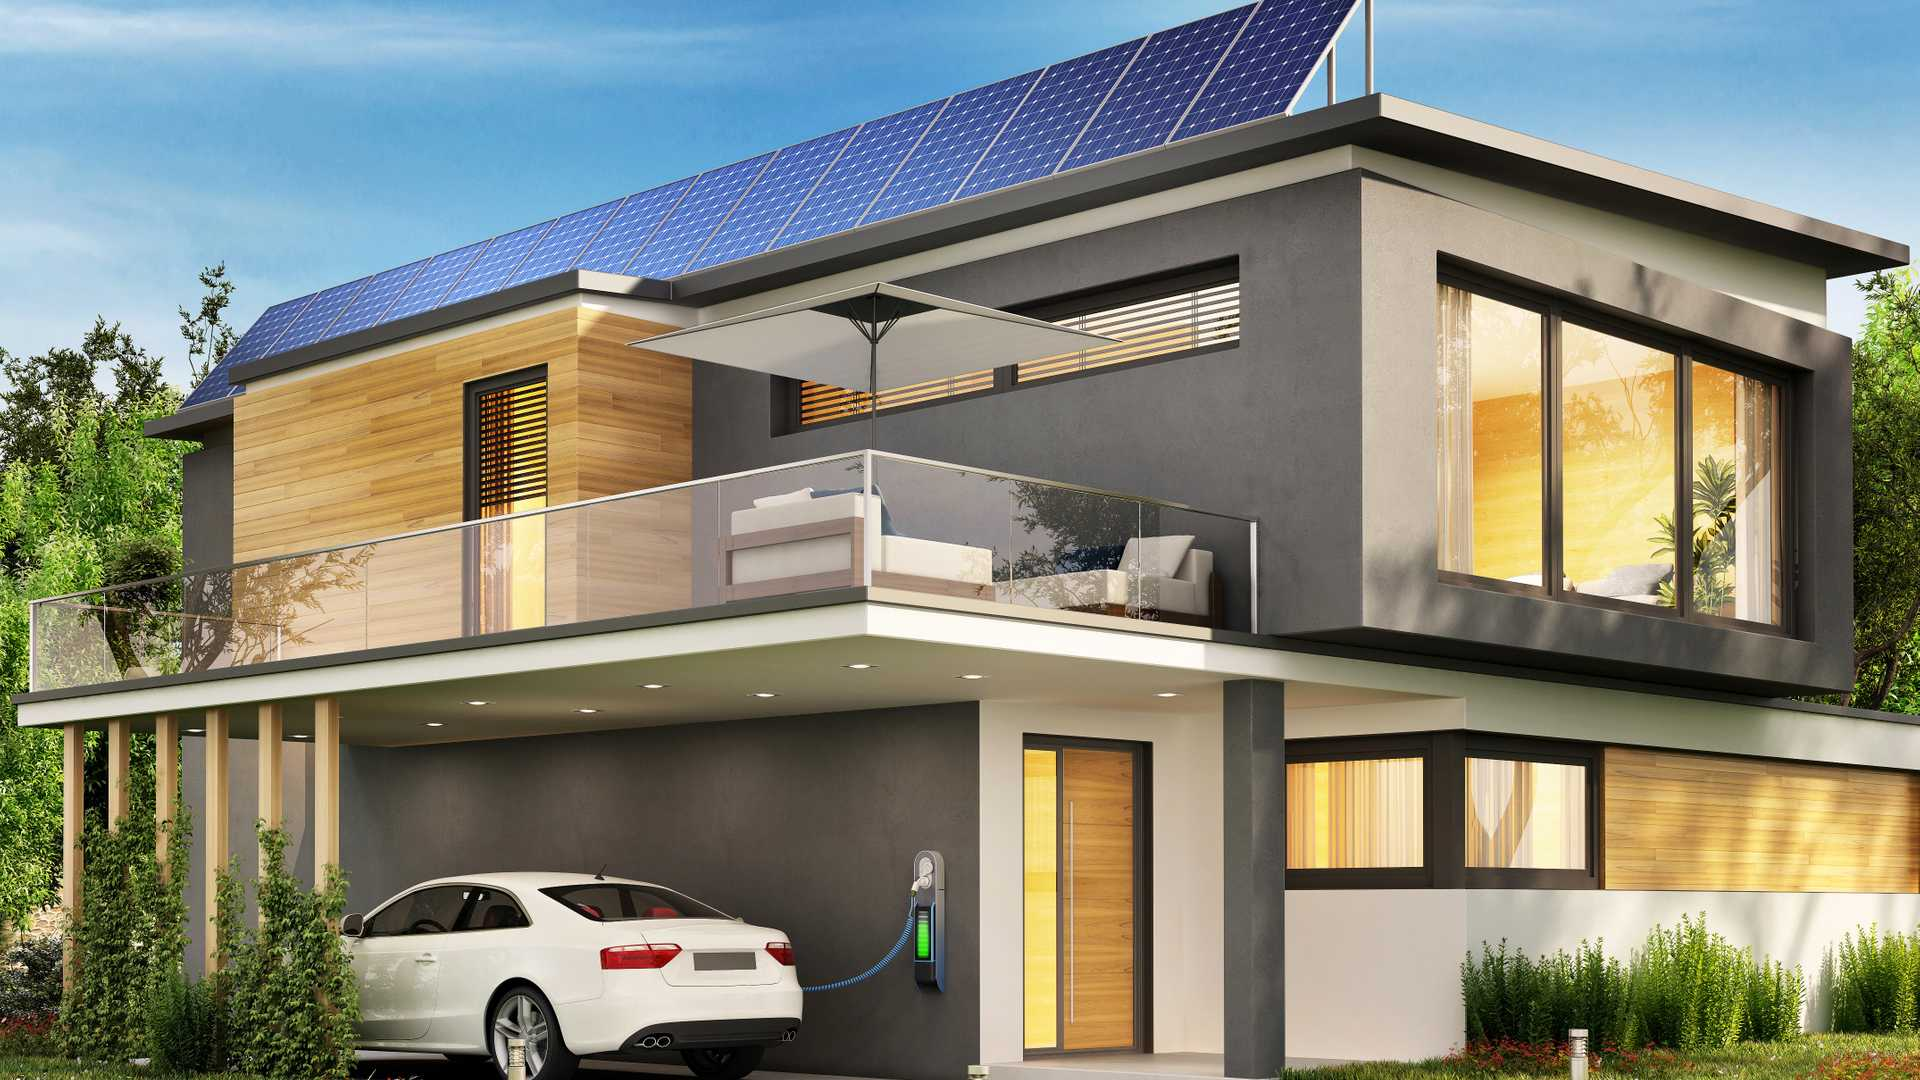 Modern homes with electric car charging illustrations | Motor1.com ...